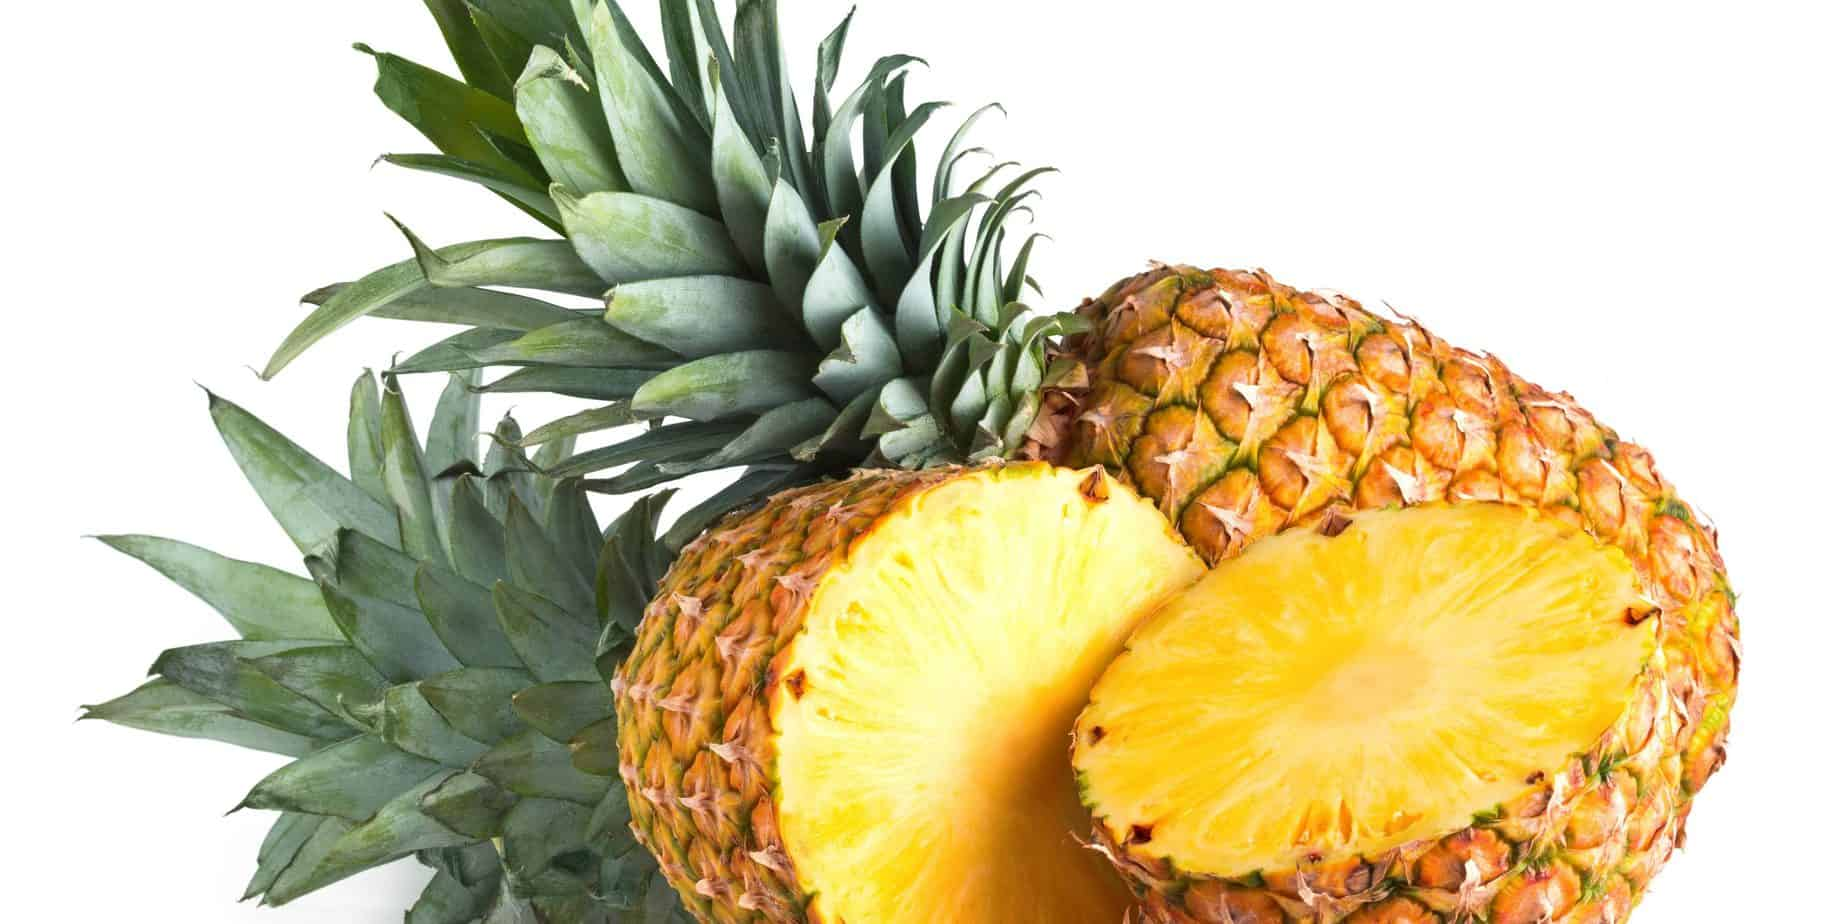 Health Benefits Of Pineapple Include Everything From Tumor